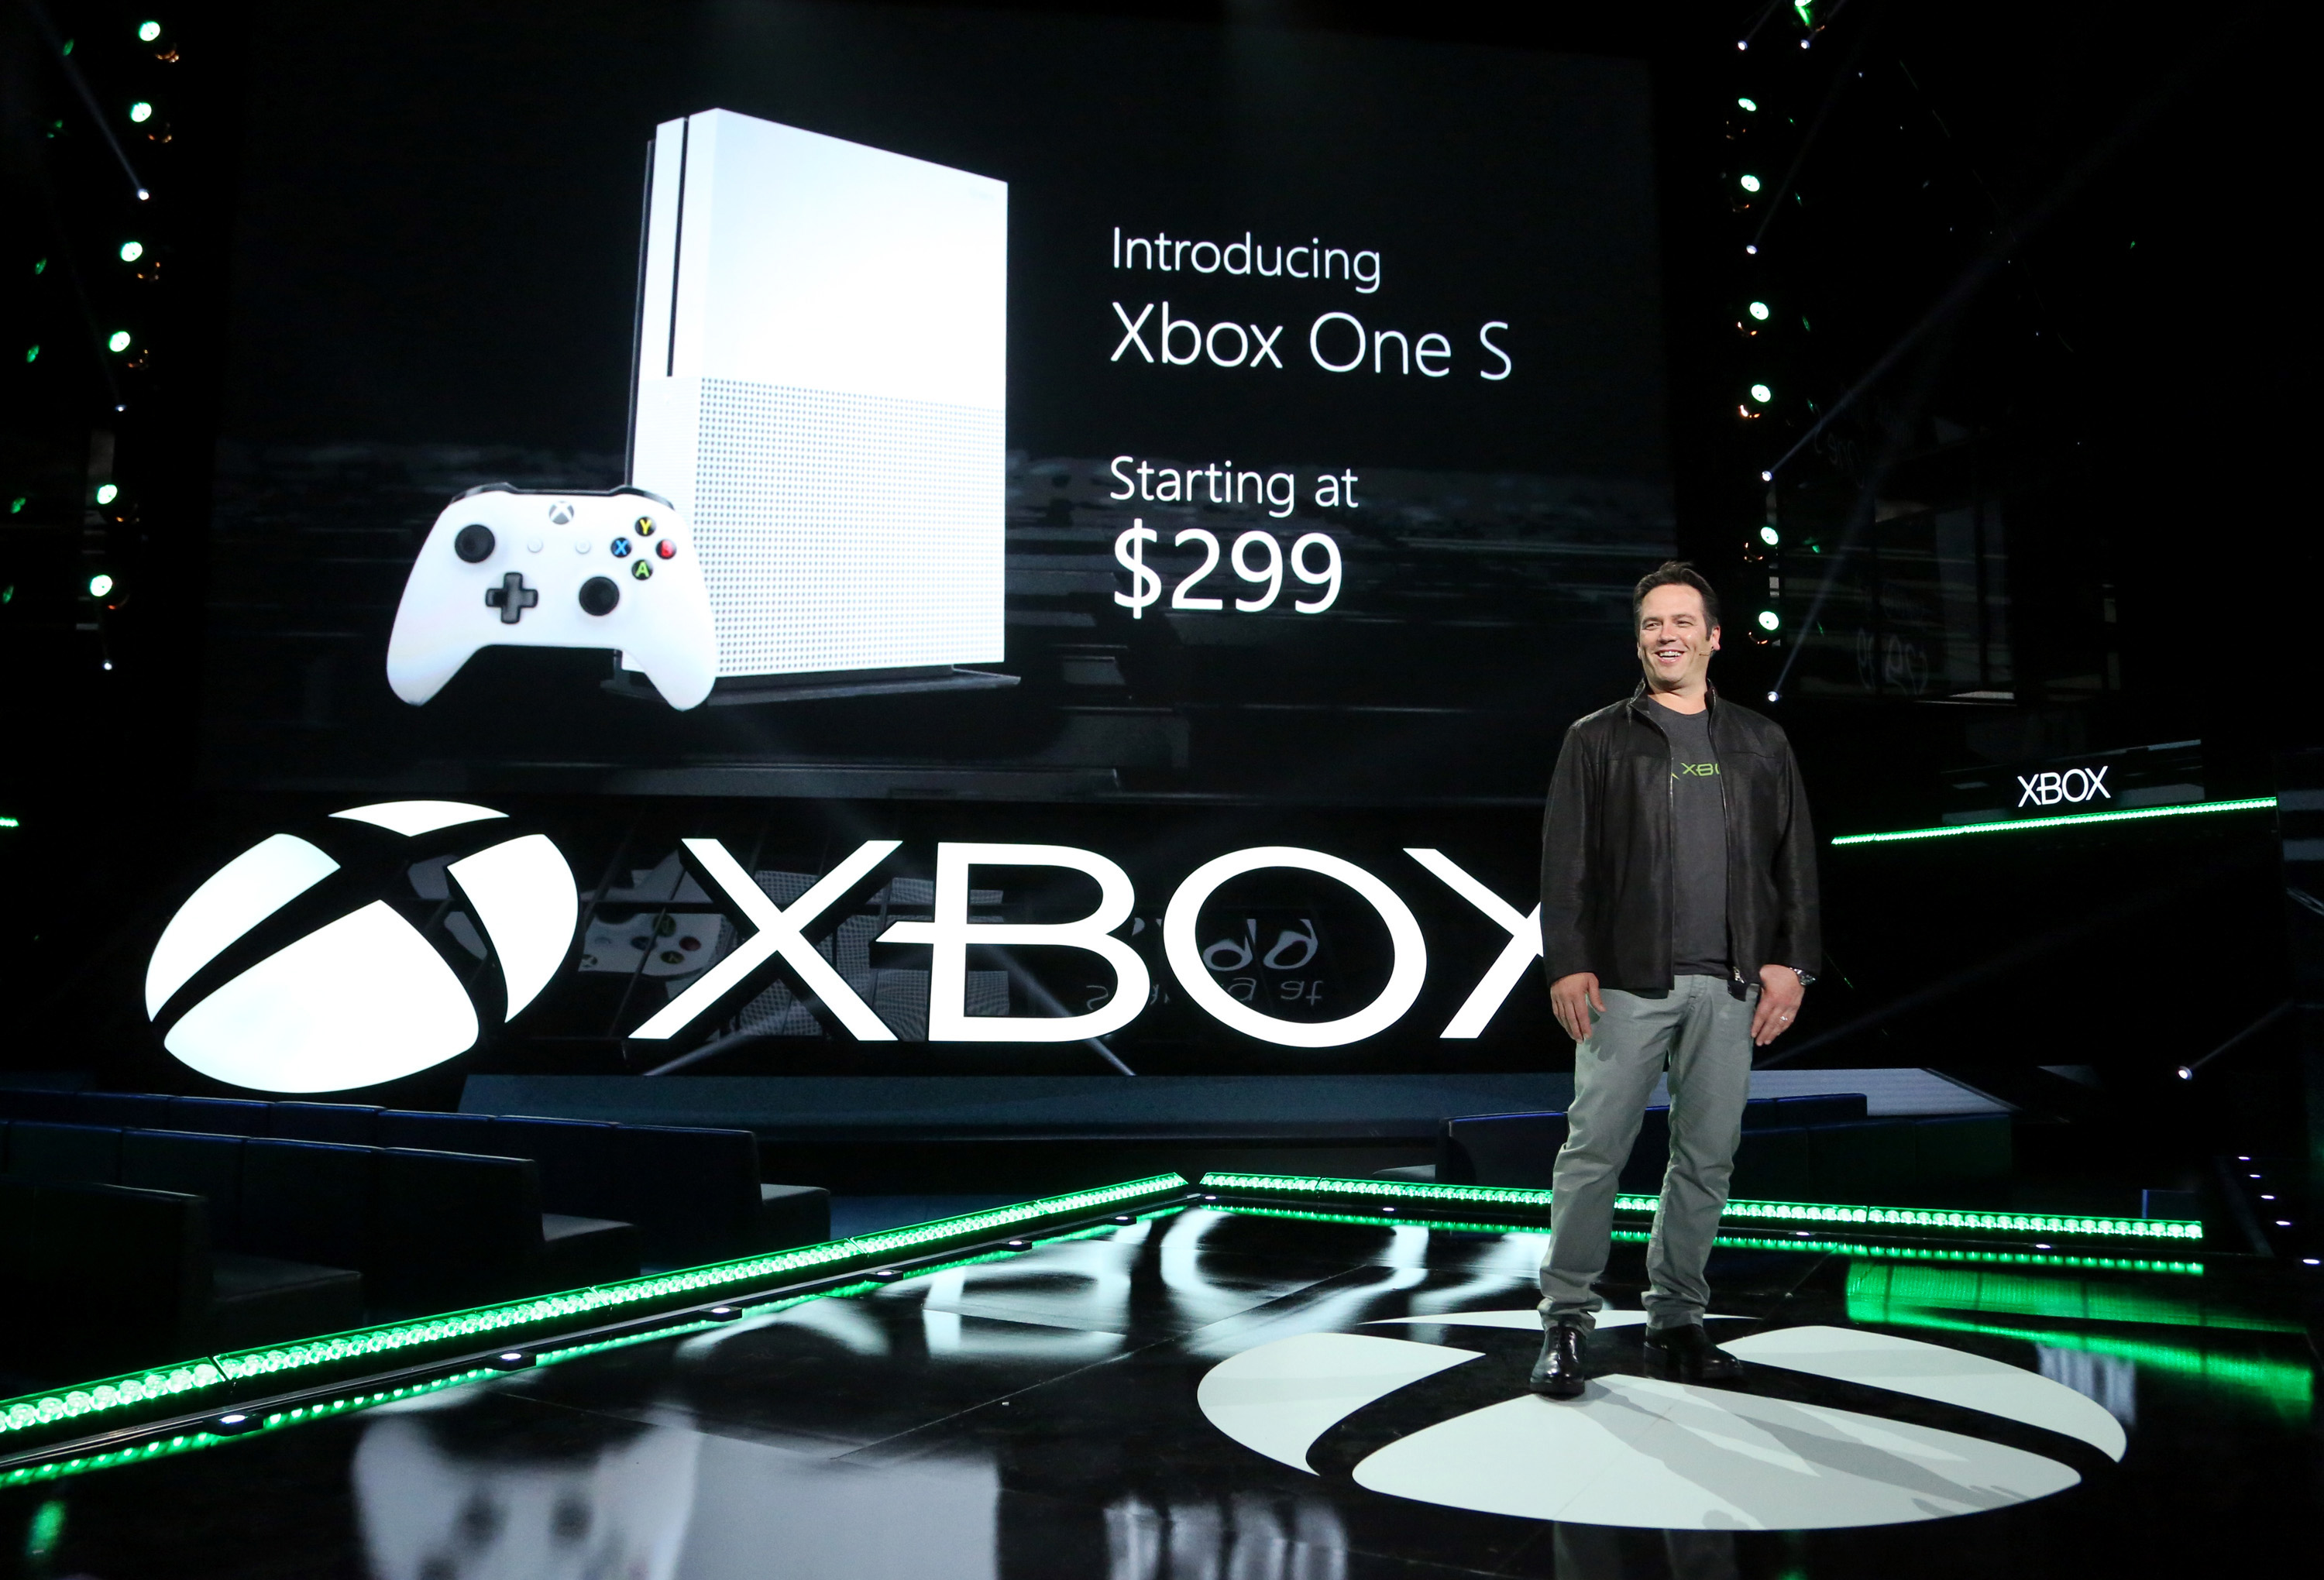 A speaker is seen at the Xbox E3 2016 Briefing Rehearsal on Sunday, June 12, 2016 in Los Angeles. (Photo by Casey Rodgers/Invision for Microsoft/AP Images)